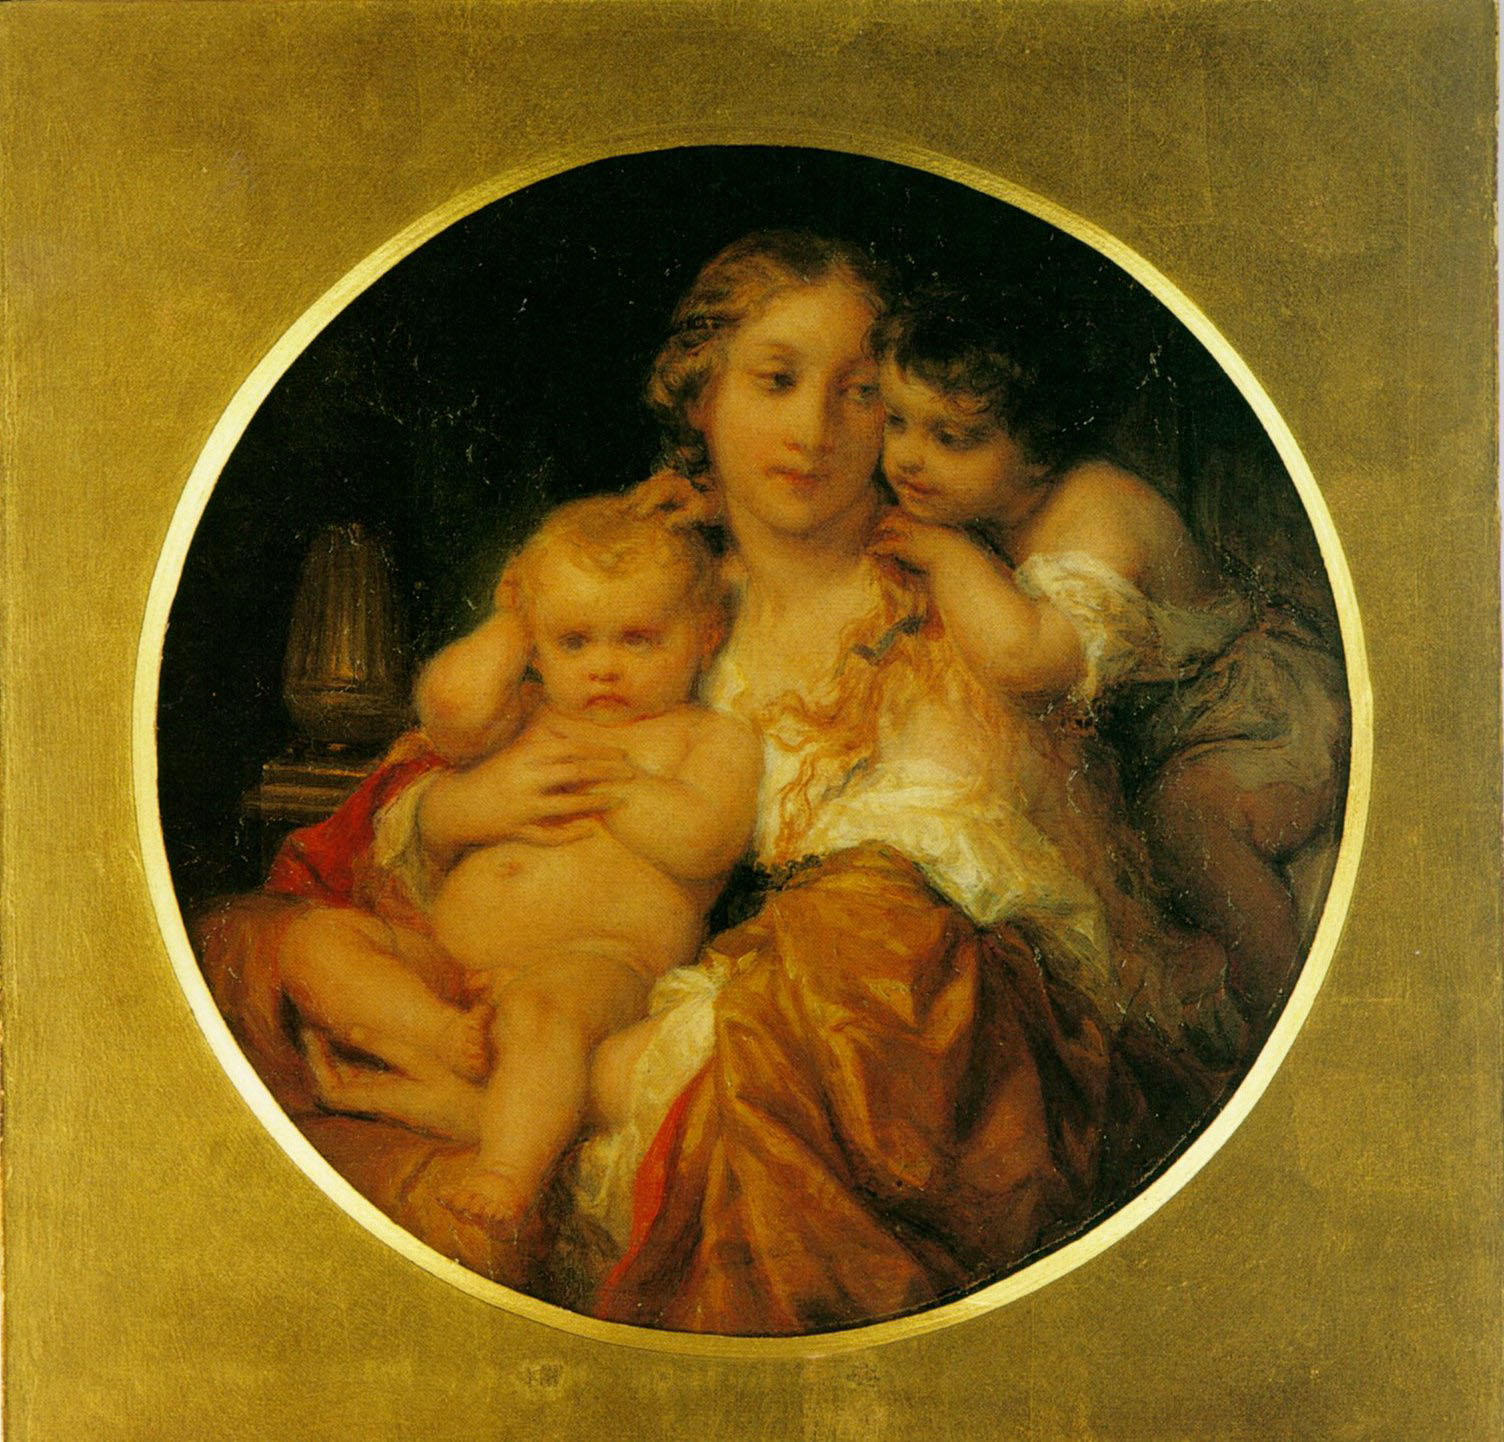 Mother and Child :: Paul Delaroche  - Woman and child in painting and art ôîòî